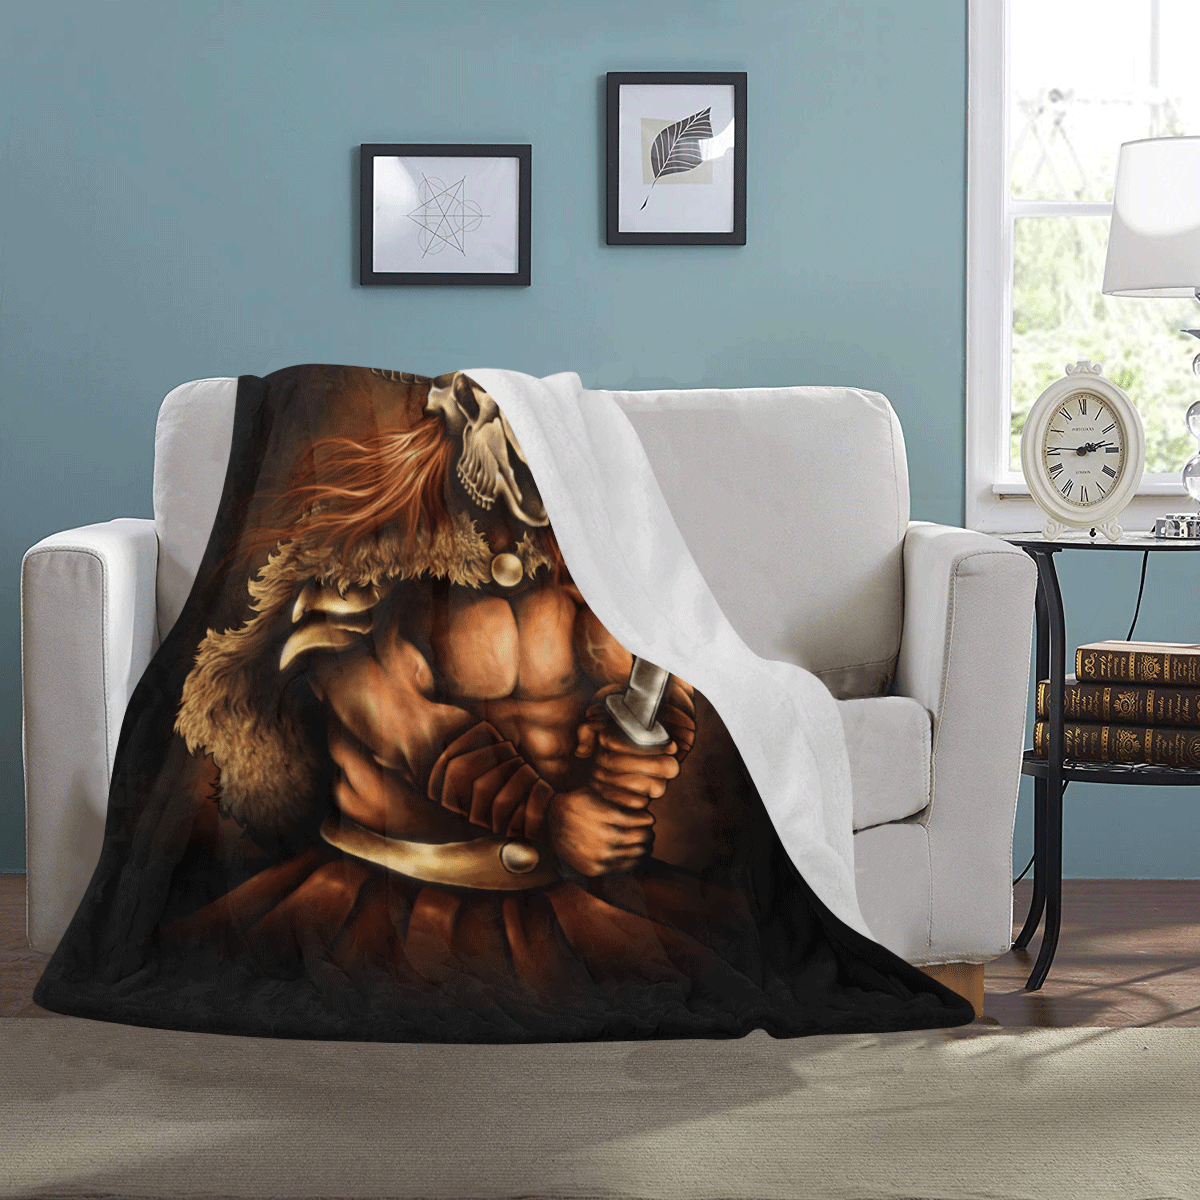 Battle For Honor Ultra Soft Fleece Blanket